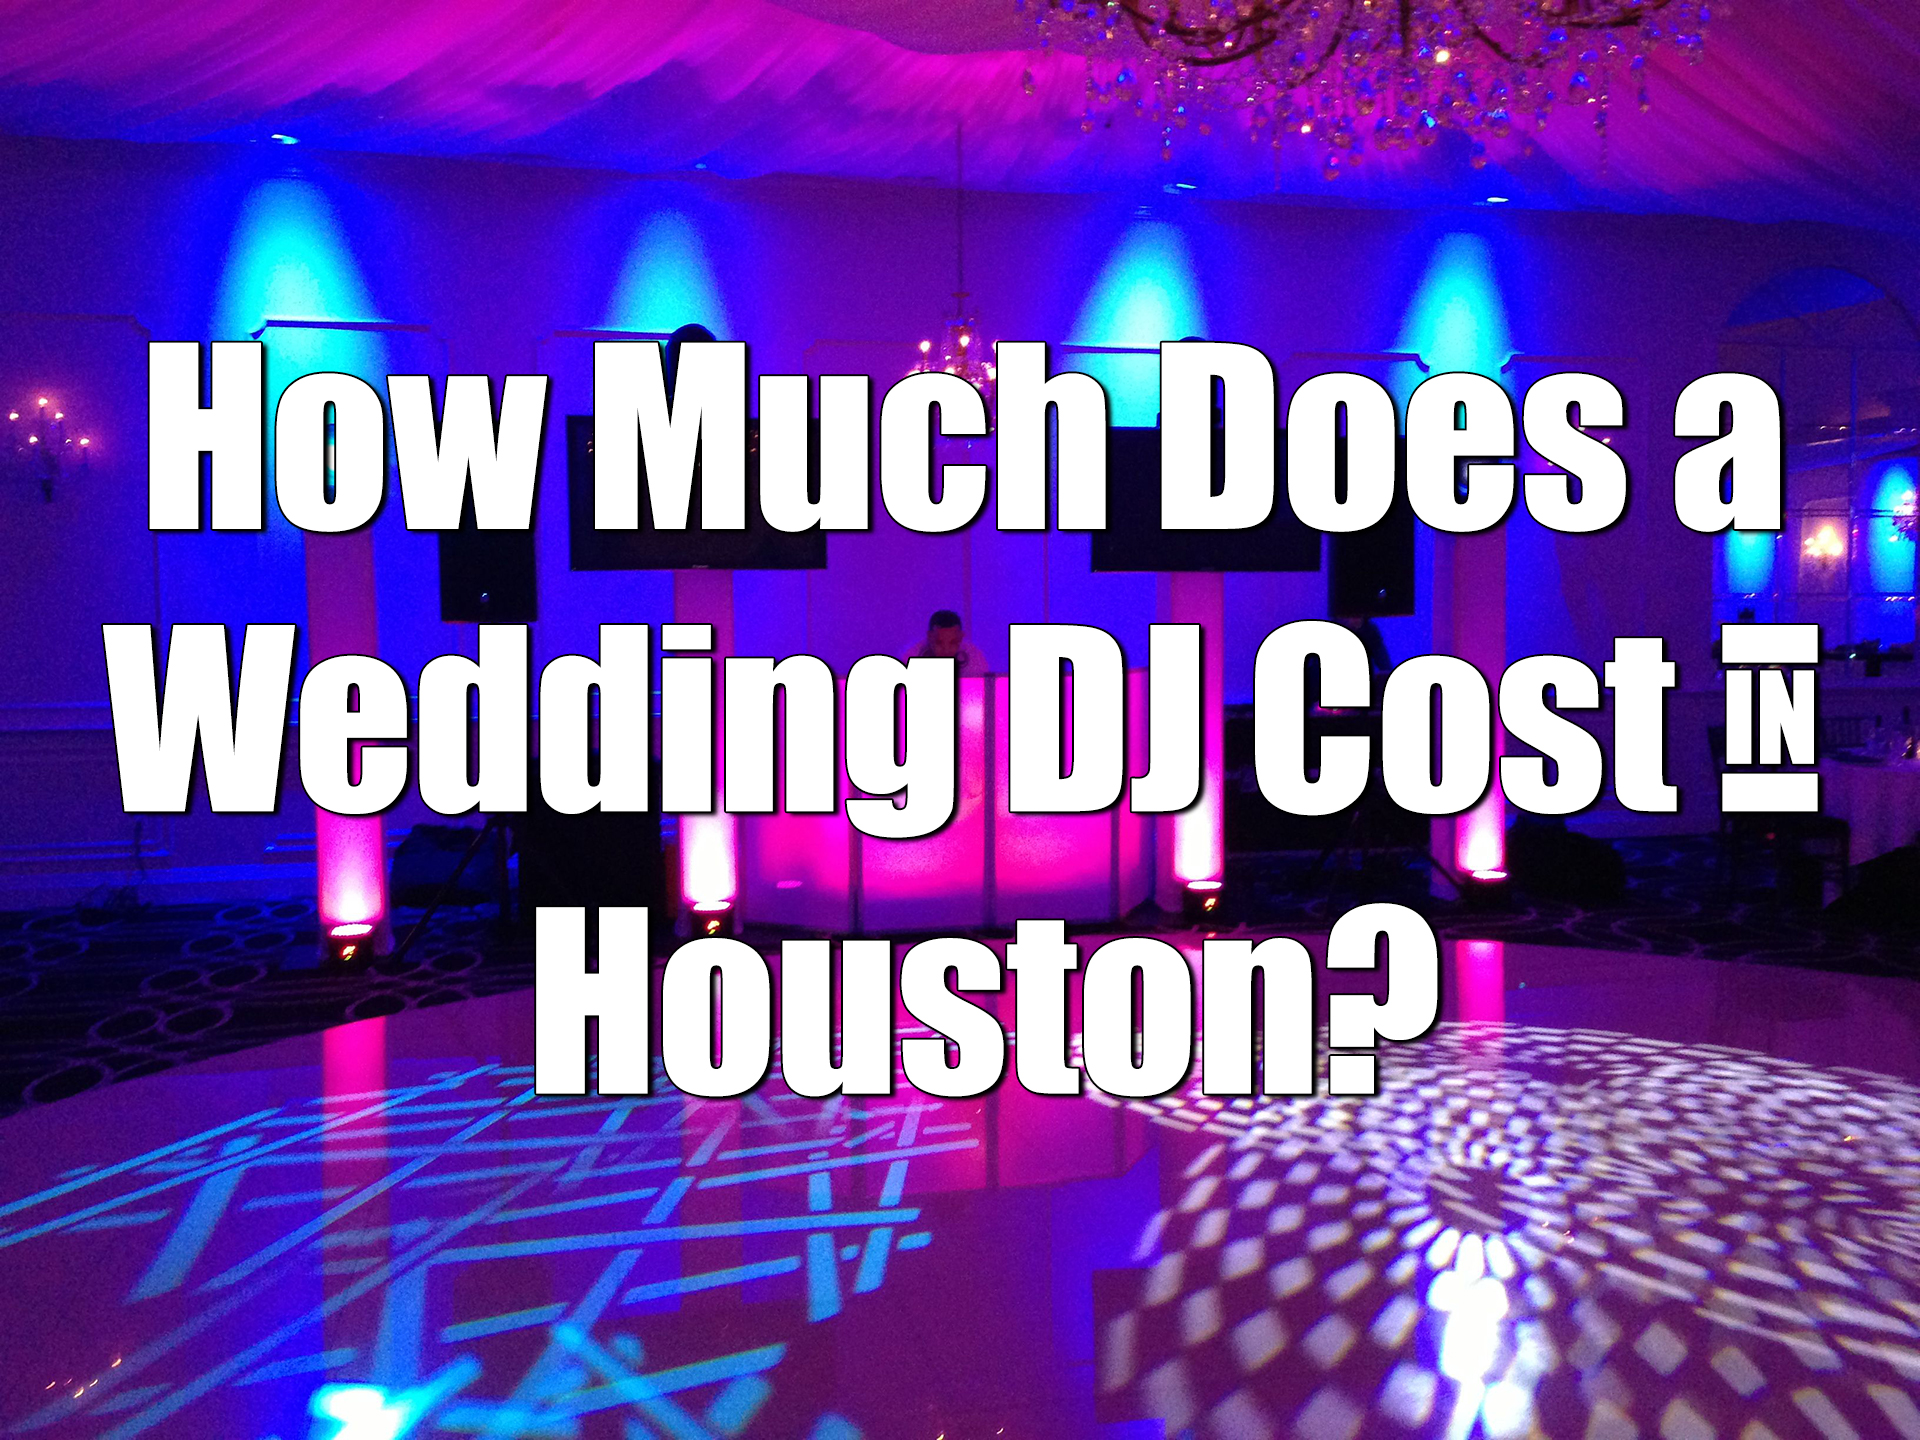 Wedding DJ cost in Houston